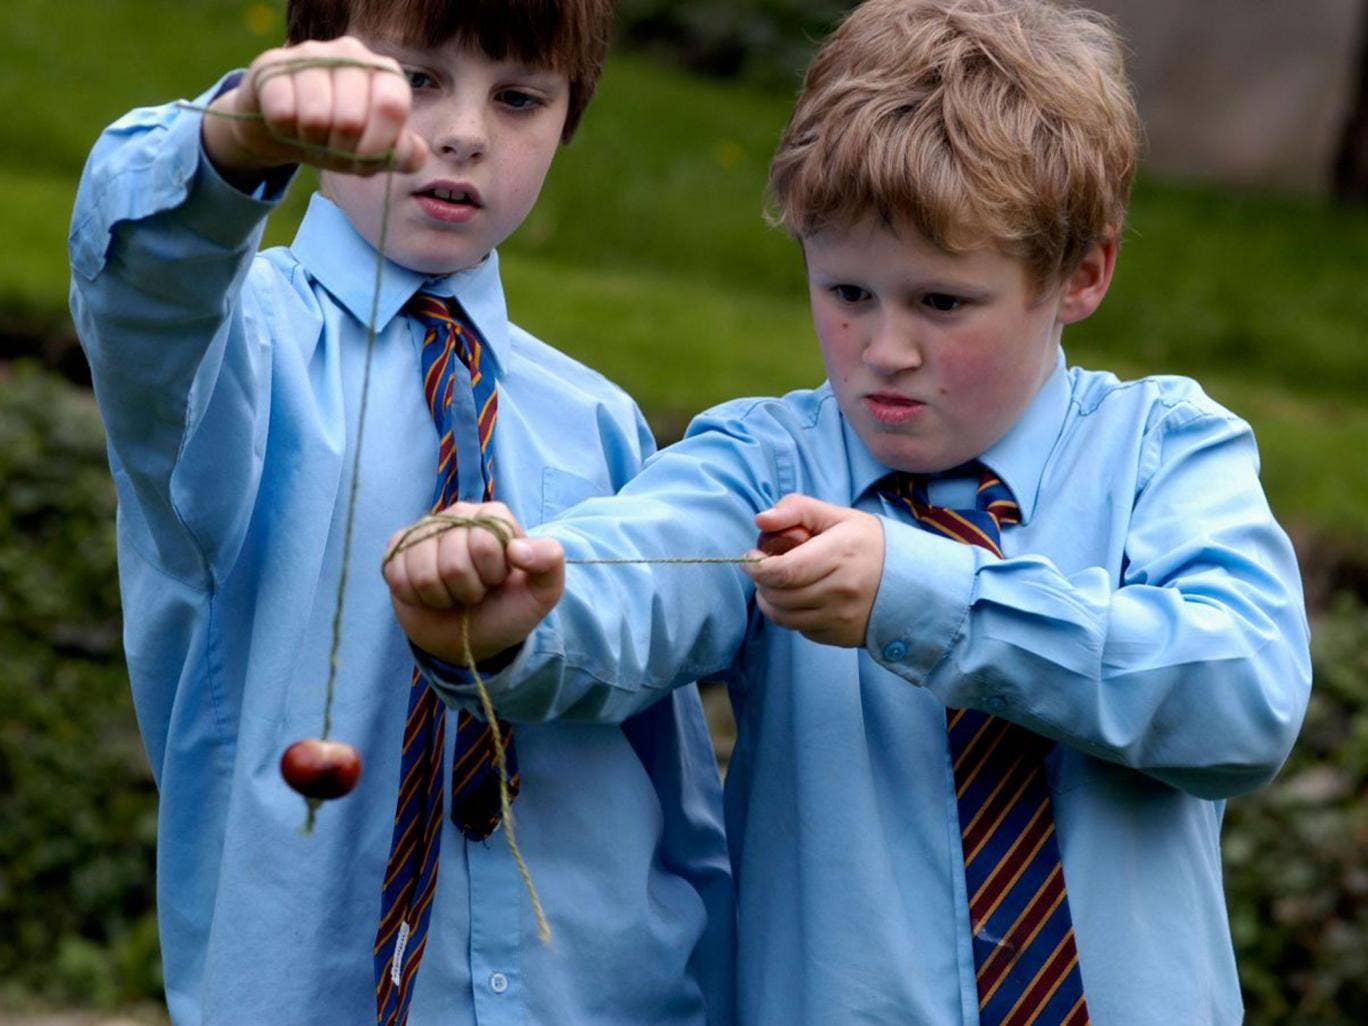 Traditional conker matches between schoolchildren are banned as they represent a safety risk